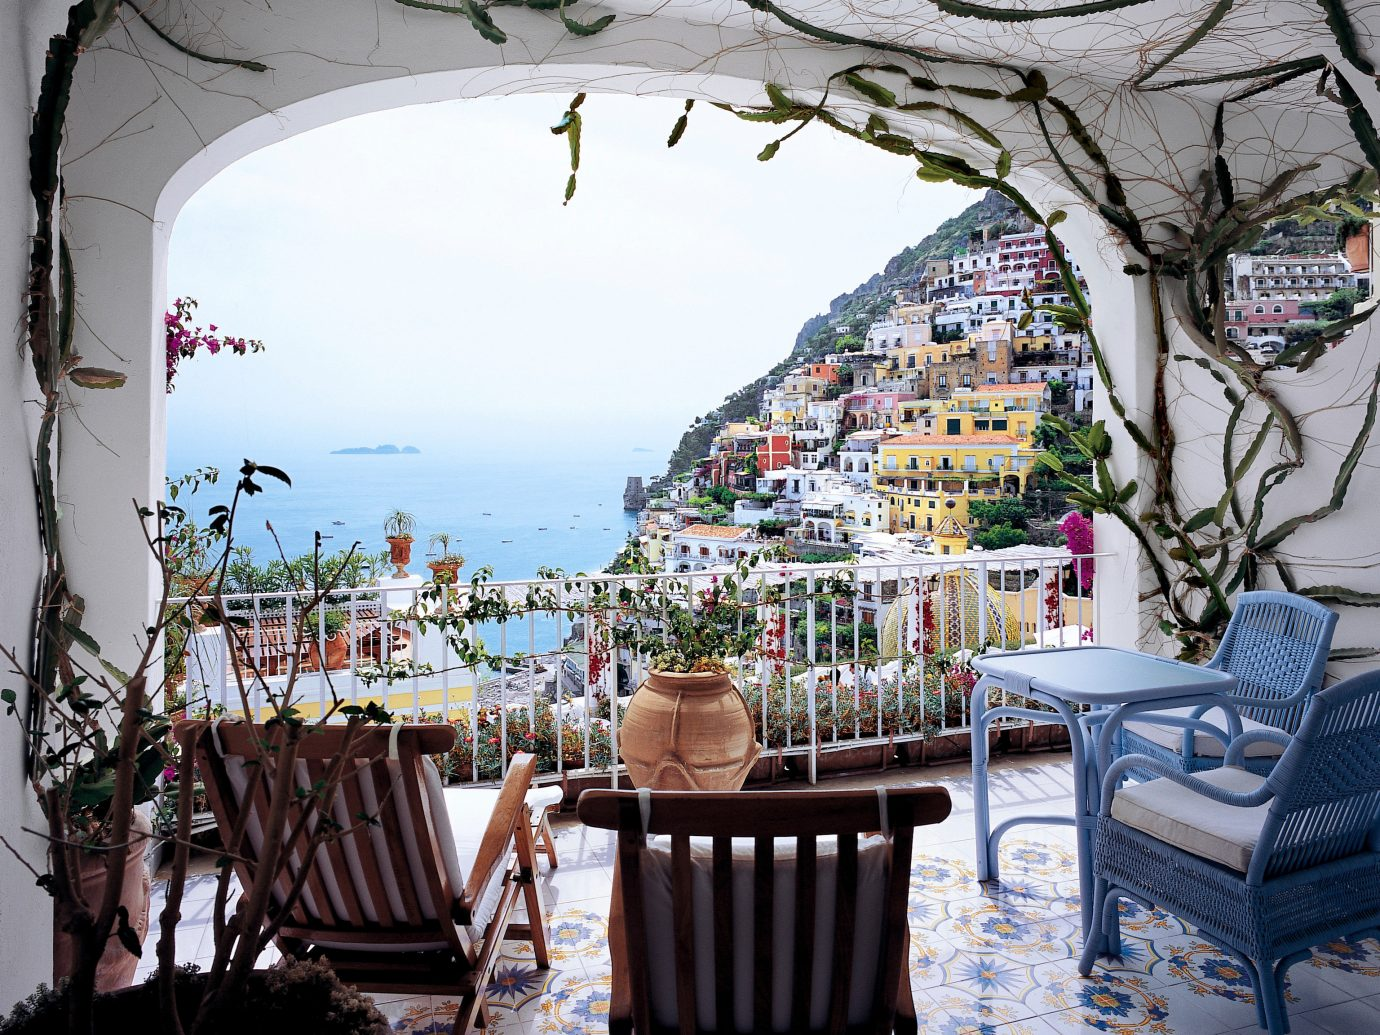 View of city from Le Sirenuse Positano, Italy